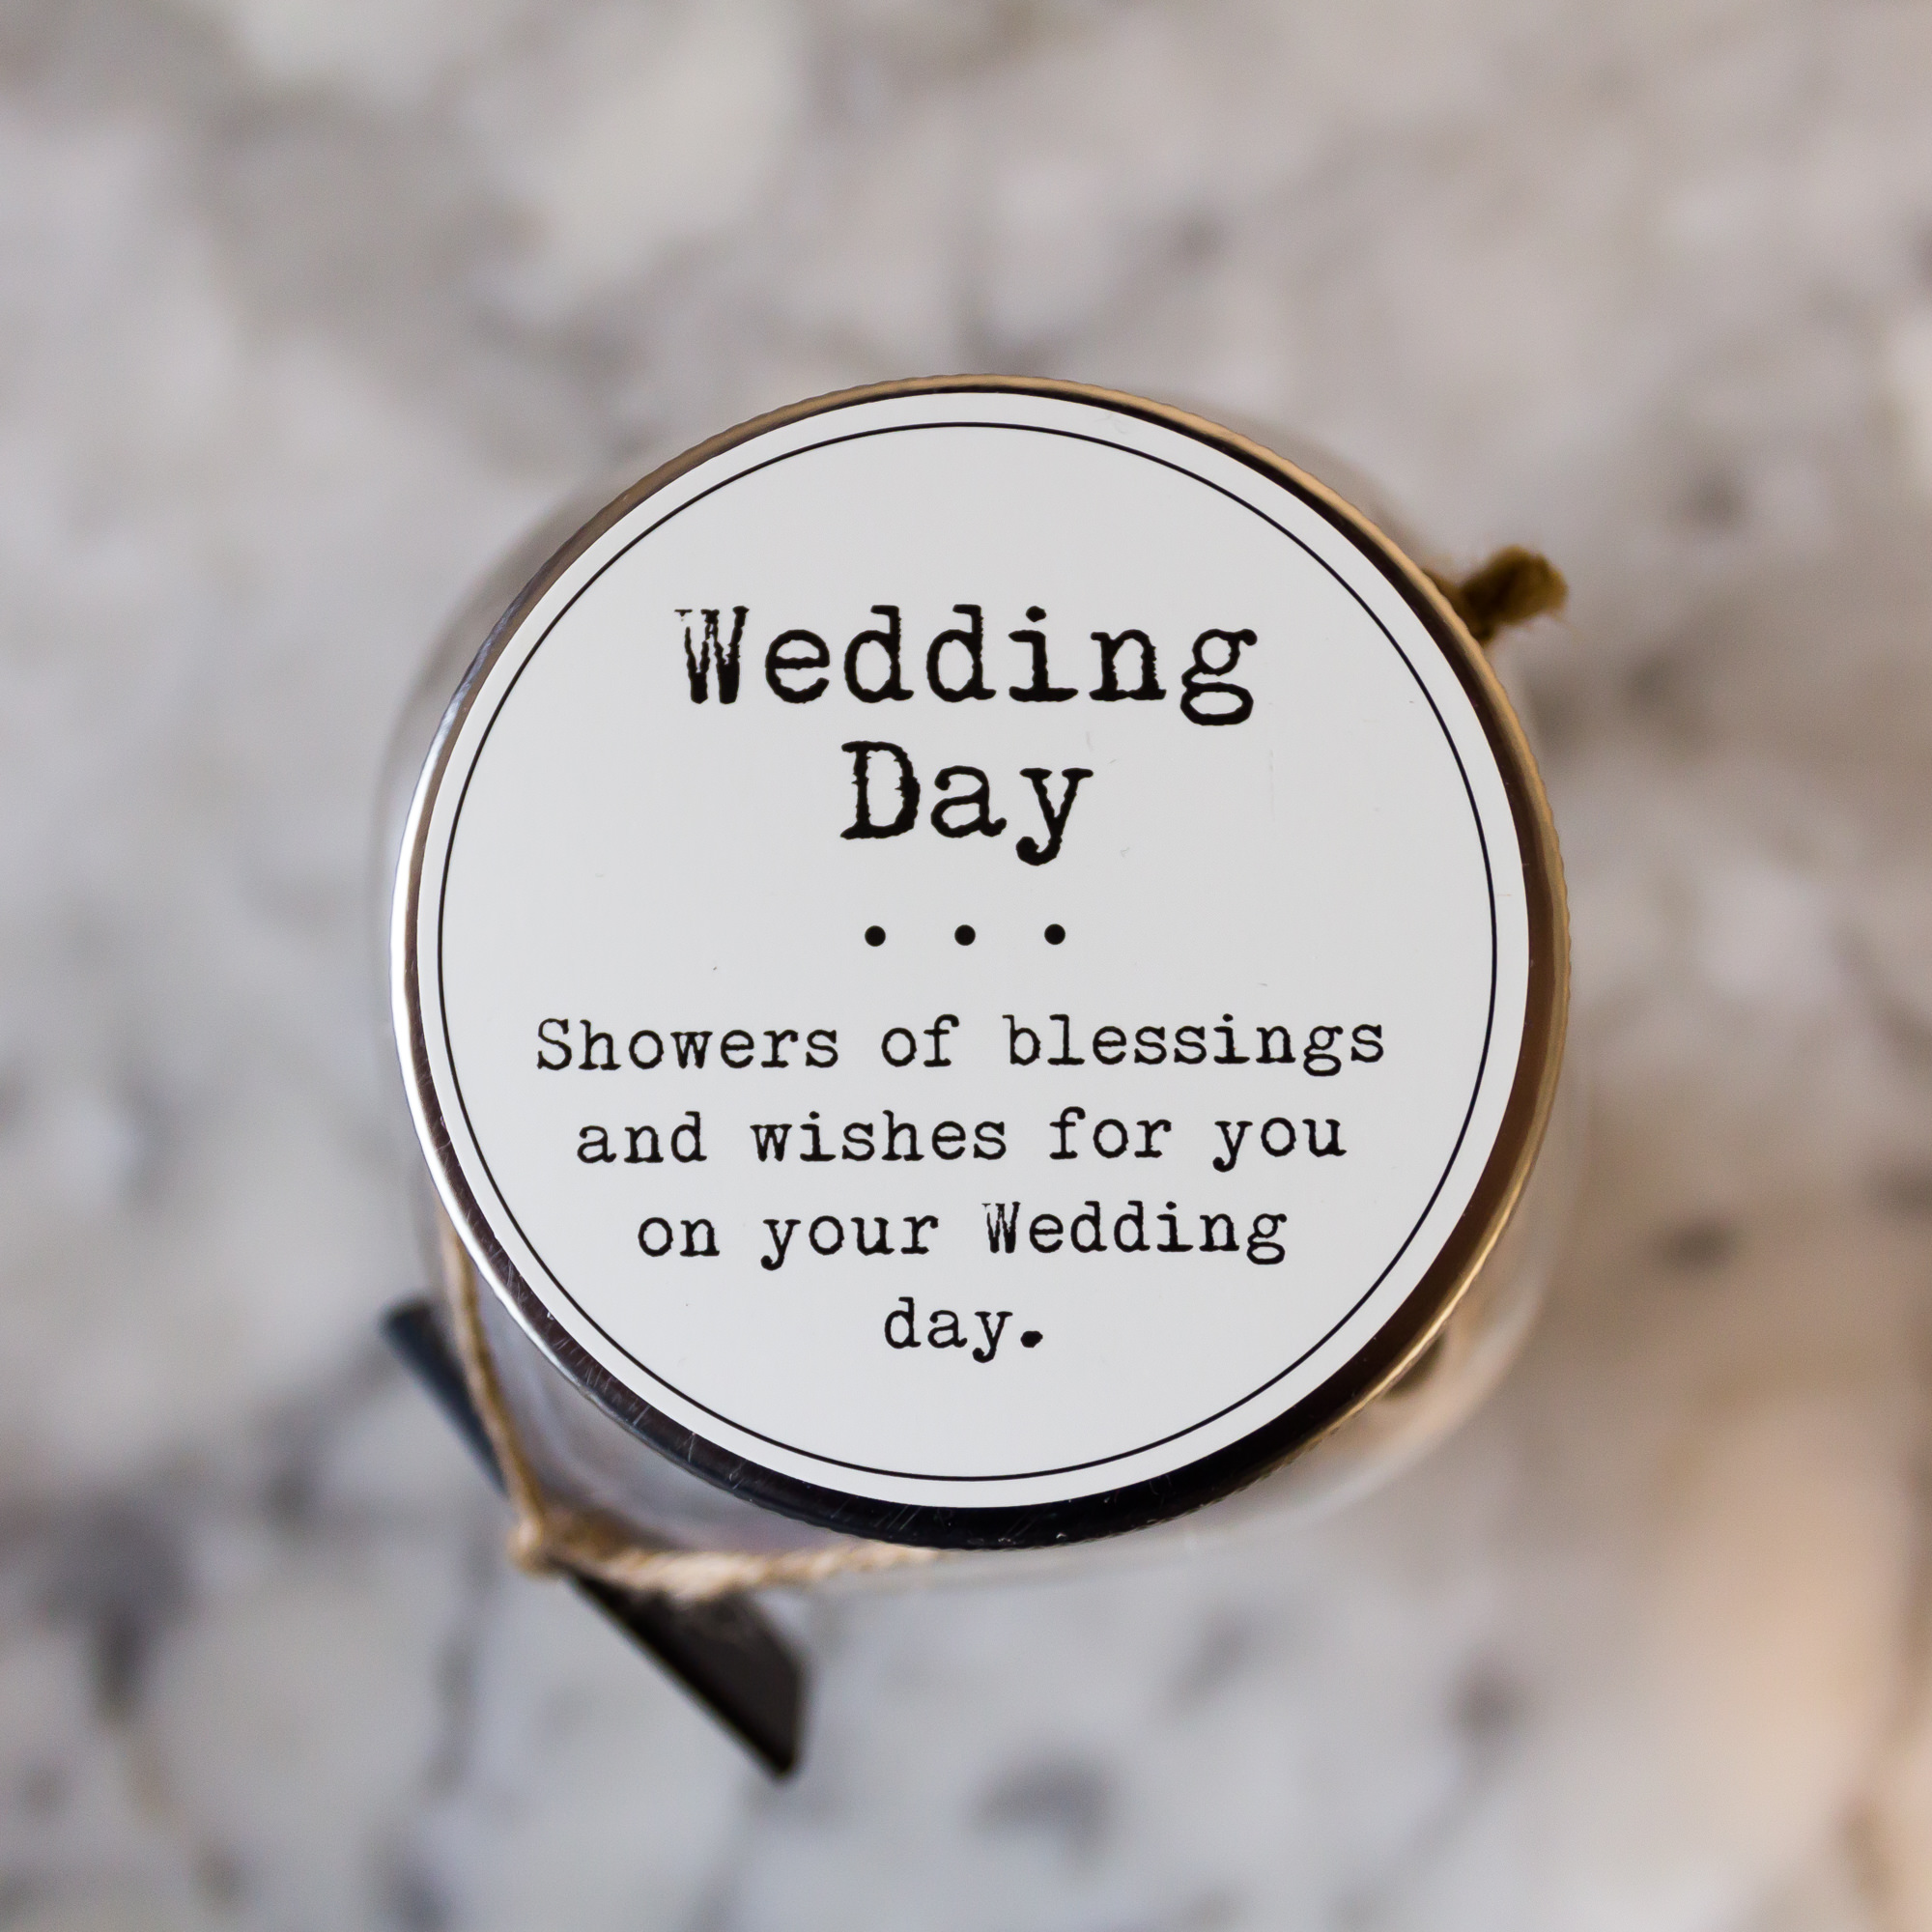 Wedding Wishes - Wedding Wish Jar